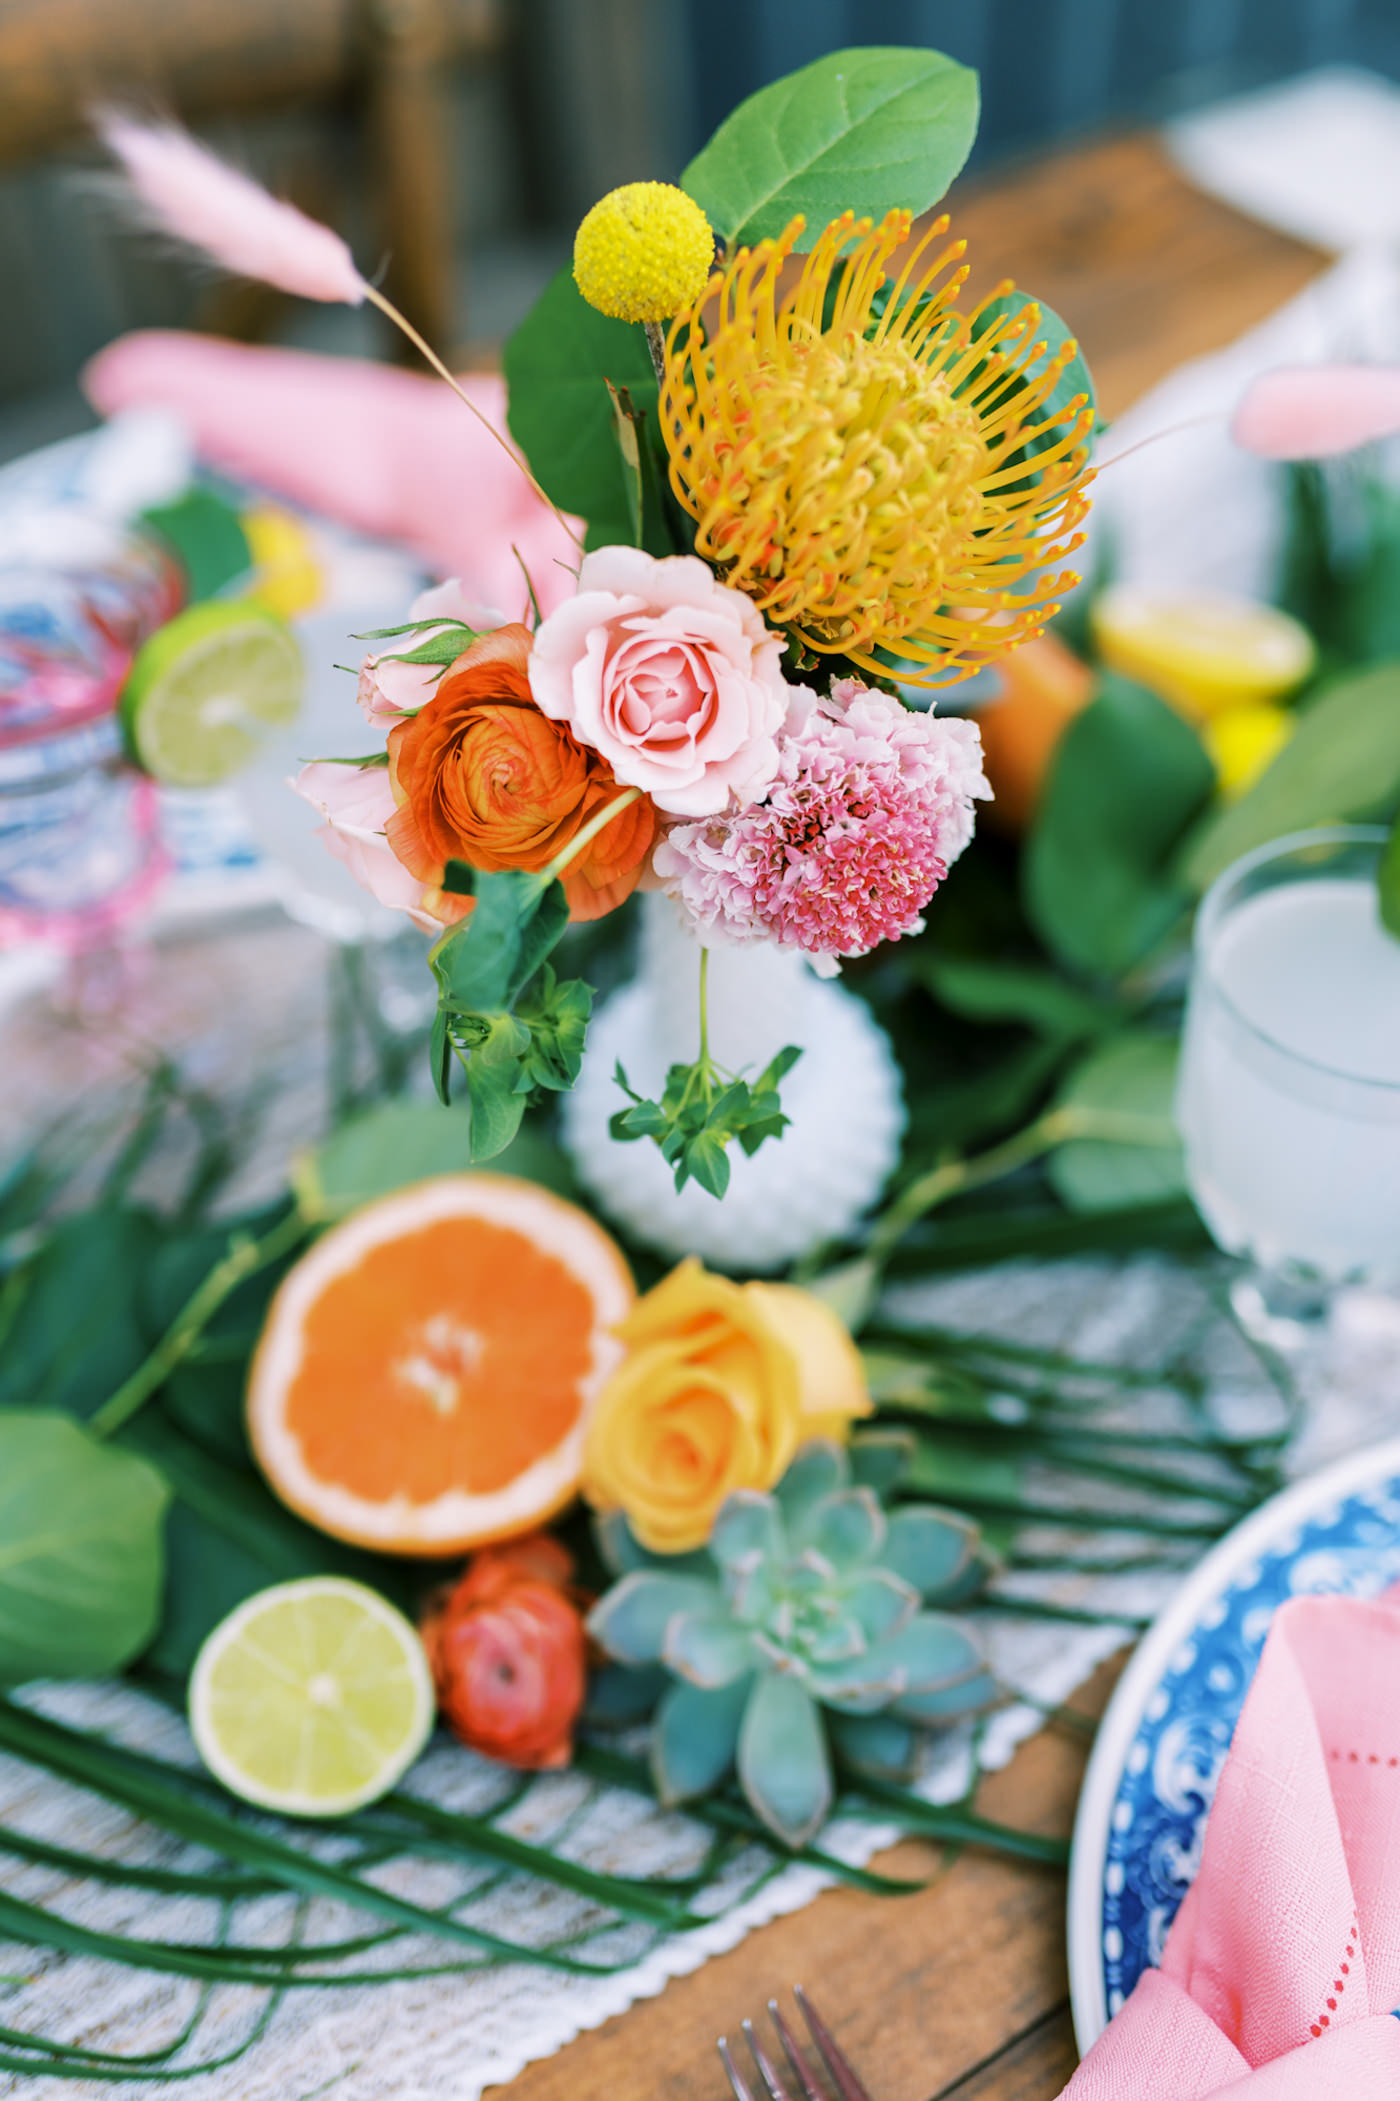 Bright Colorful Florida Citrus Wedding Inspiration | Outdoor Reception Wood Farm Feasting Table Wedding Centerpiece with Greenery Garland with Oranges and Succulents and Colorful Bud Vases with Pink Scabiosa Orange Roses and Yellow Pincushion Protea